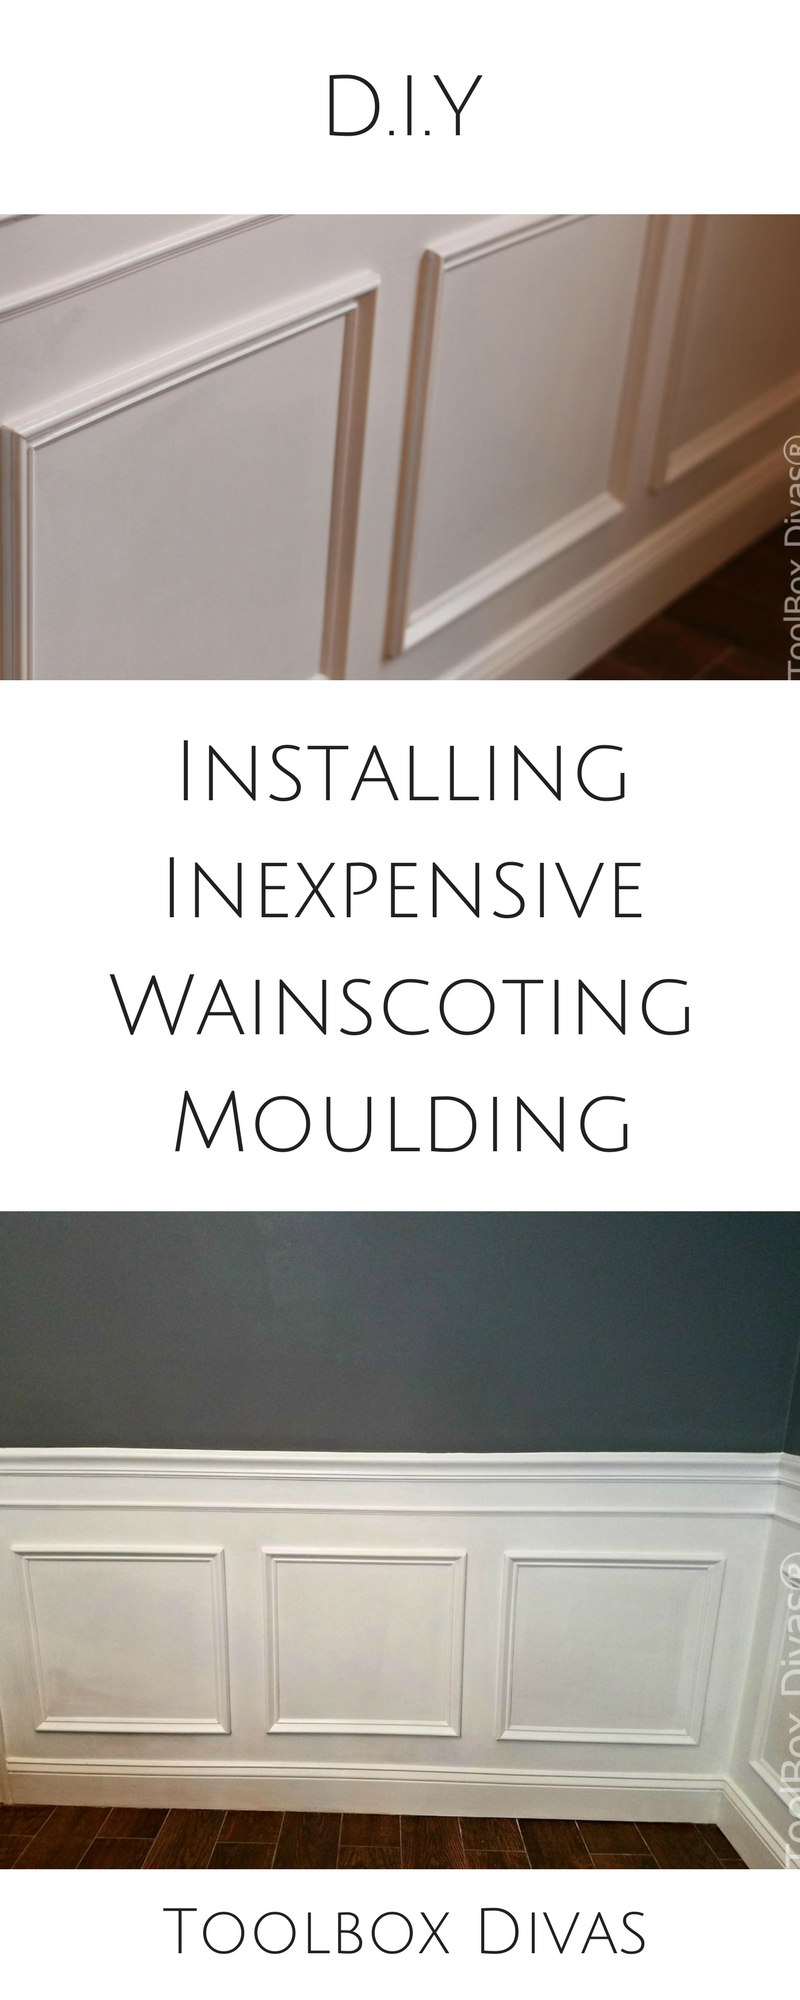 Step By Diy How To Tutorial Installing Wainscoting Dining Room Wall Treatment Beadboard Moulding Molding Trim Picture Frame Toolboxdivas